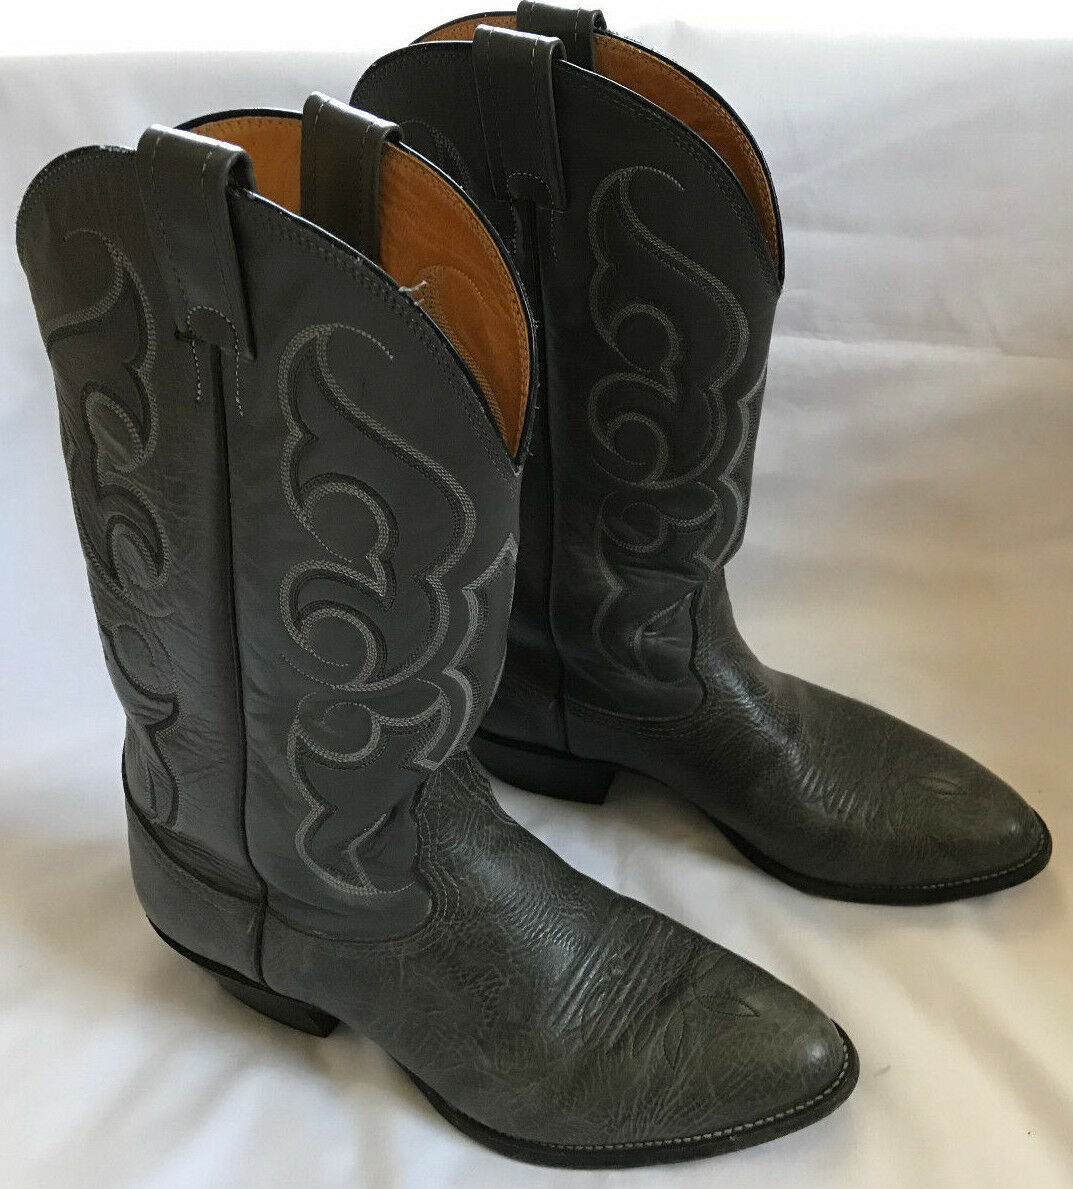 Nocona 83432 Gray Leather Western Riding Bronco Rodeo Cowboy Boots Men's 9.5 D